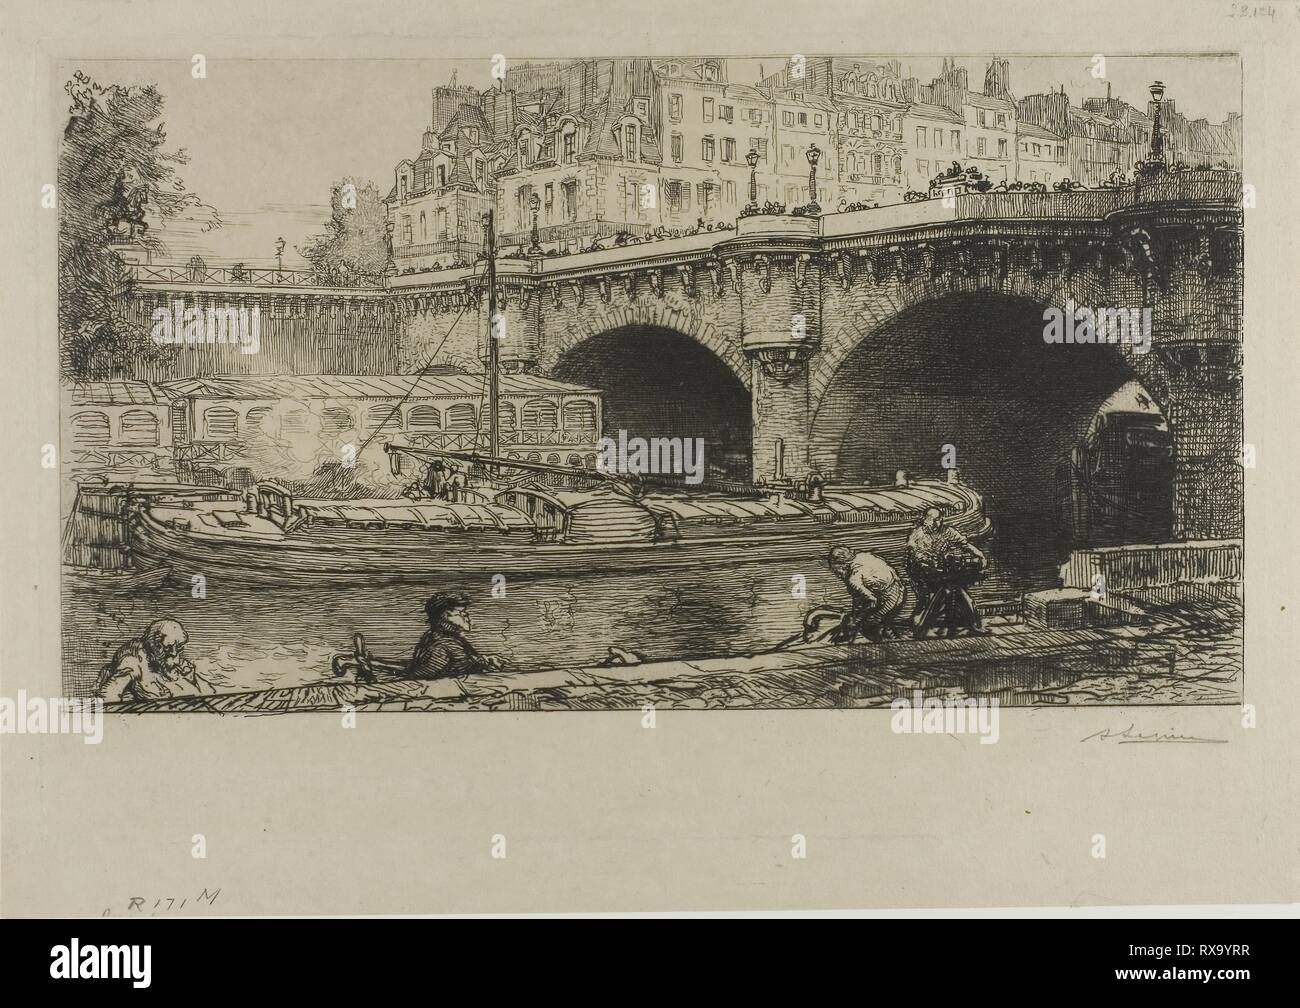 The Pont-Neuf. Louis Auguste Lepère; French, 1849-1918. Date: 1901. Dimensions: 172 × 310 mm (image); 209 × 320 mm (plate); 240 × 341 mm (sheet). Etching on cream wove paper. Origin: France. Museum: The Chicago Art Institute. Stock Photo